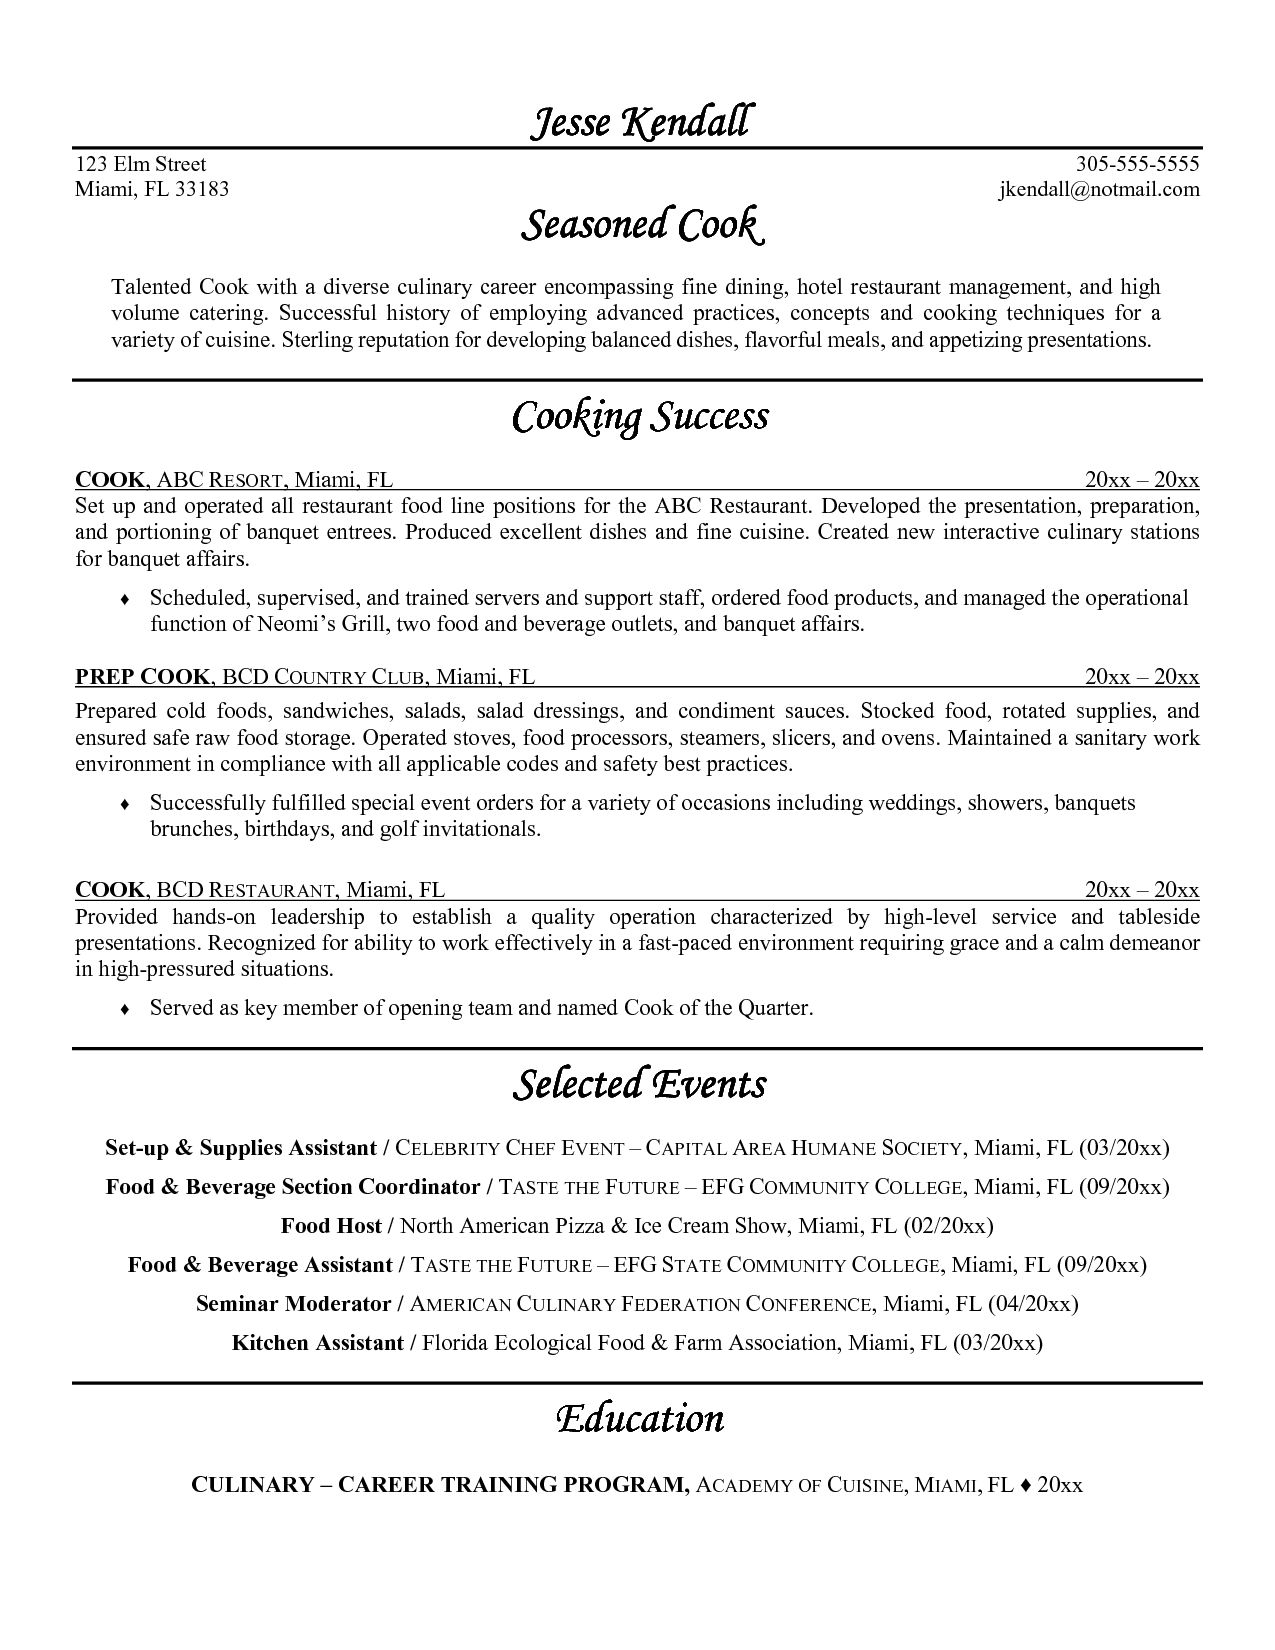 Restaurant Resume Sample Head Chef Resume Samples Hospitality Templates Free Sample Format